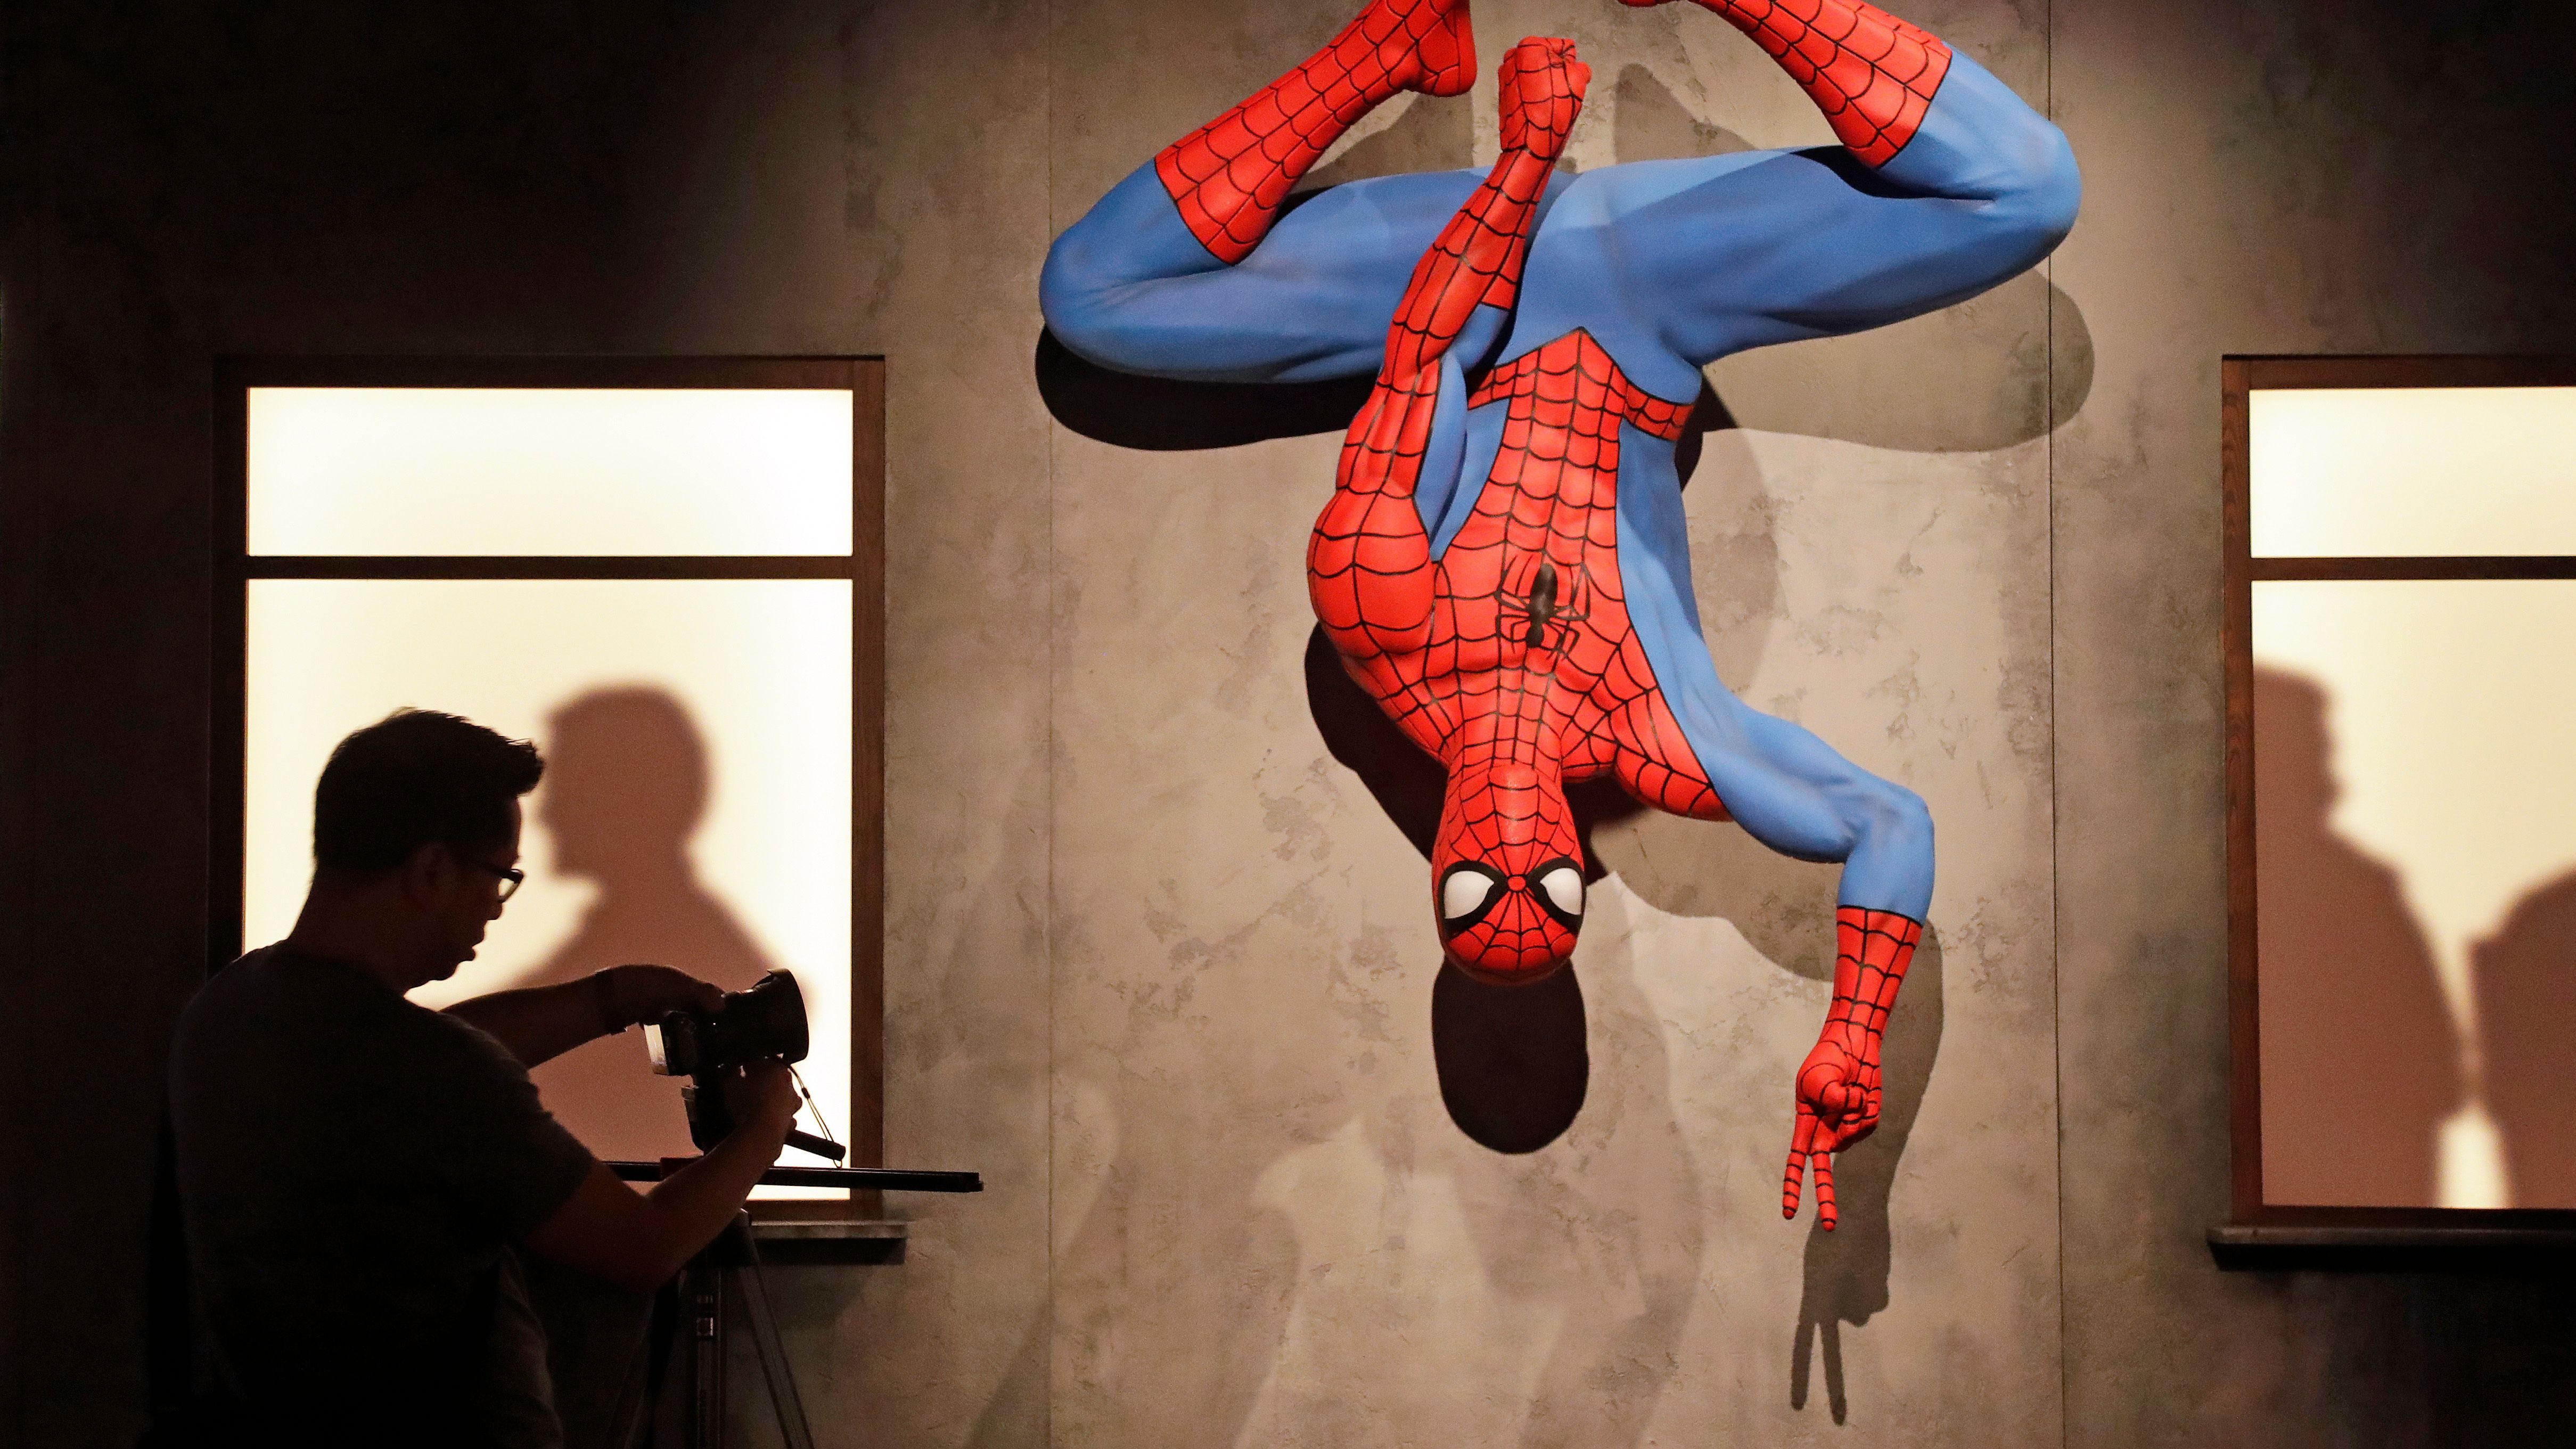 A life-size Spiderman replica hangs upside-down during a preview of the exhibit Marvel: Universe of Super Heroes at the Museum of Pop Culture (MoPOP), in Seattle.